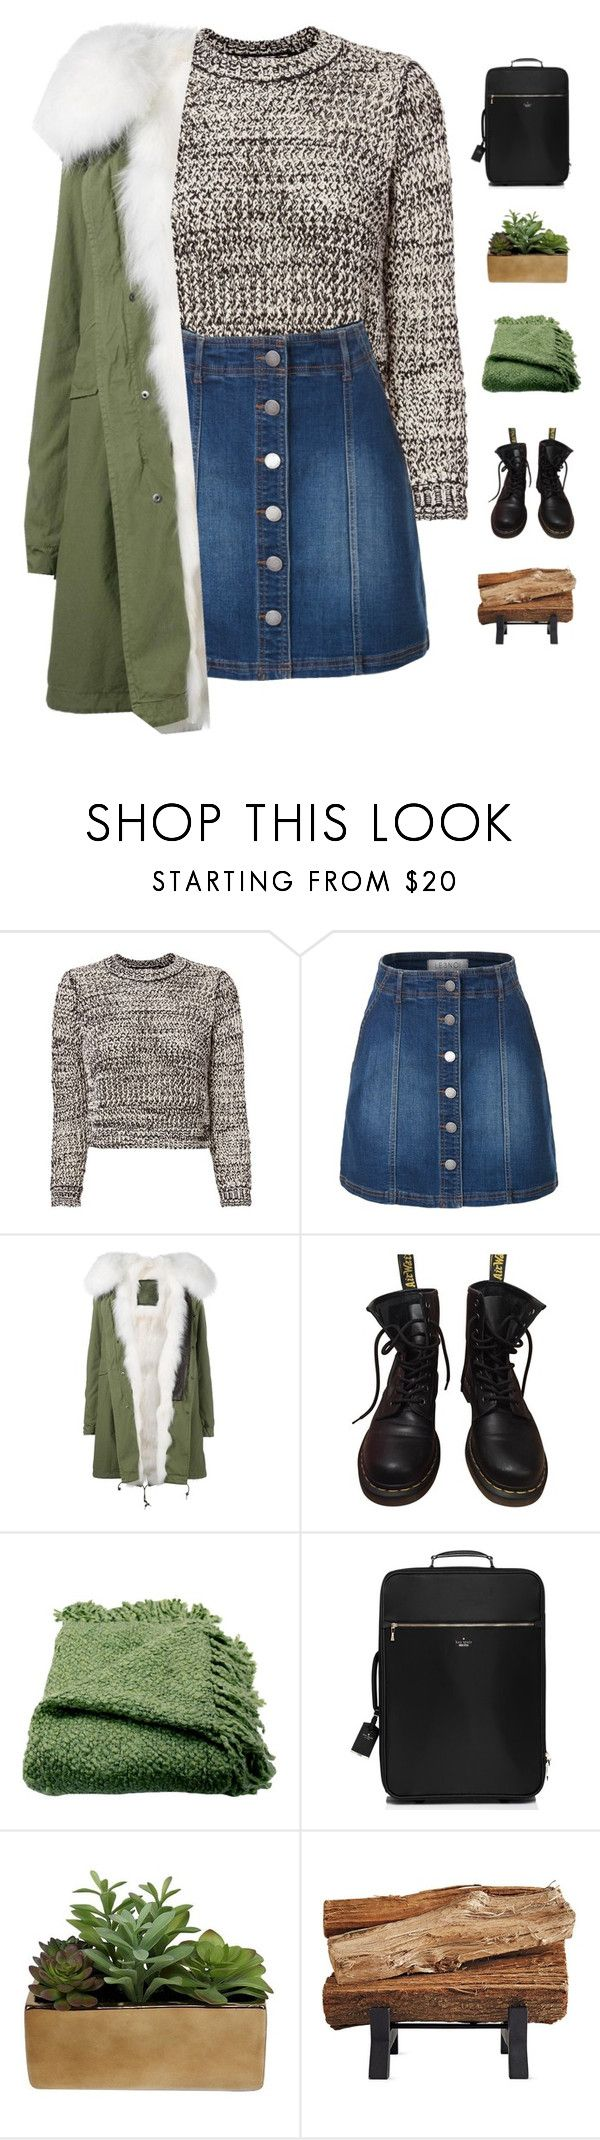 """Camp getaway"" by genesis129 on Polyvore featuring 10 Crosby Derek Lam, LE3NO, Mr & Mrs Italy, Dr. Martens, Woven Workz, Kate Spade, Threshold and vintage"